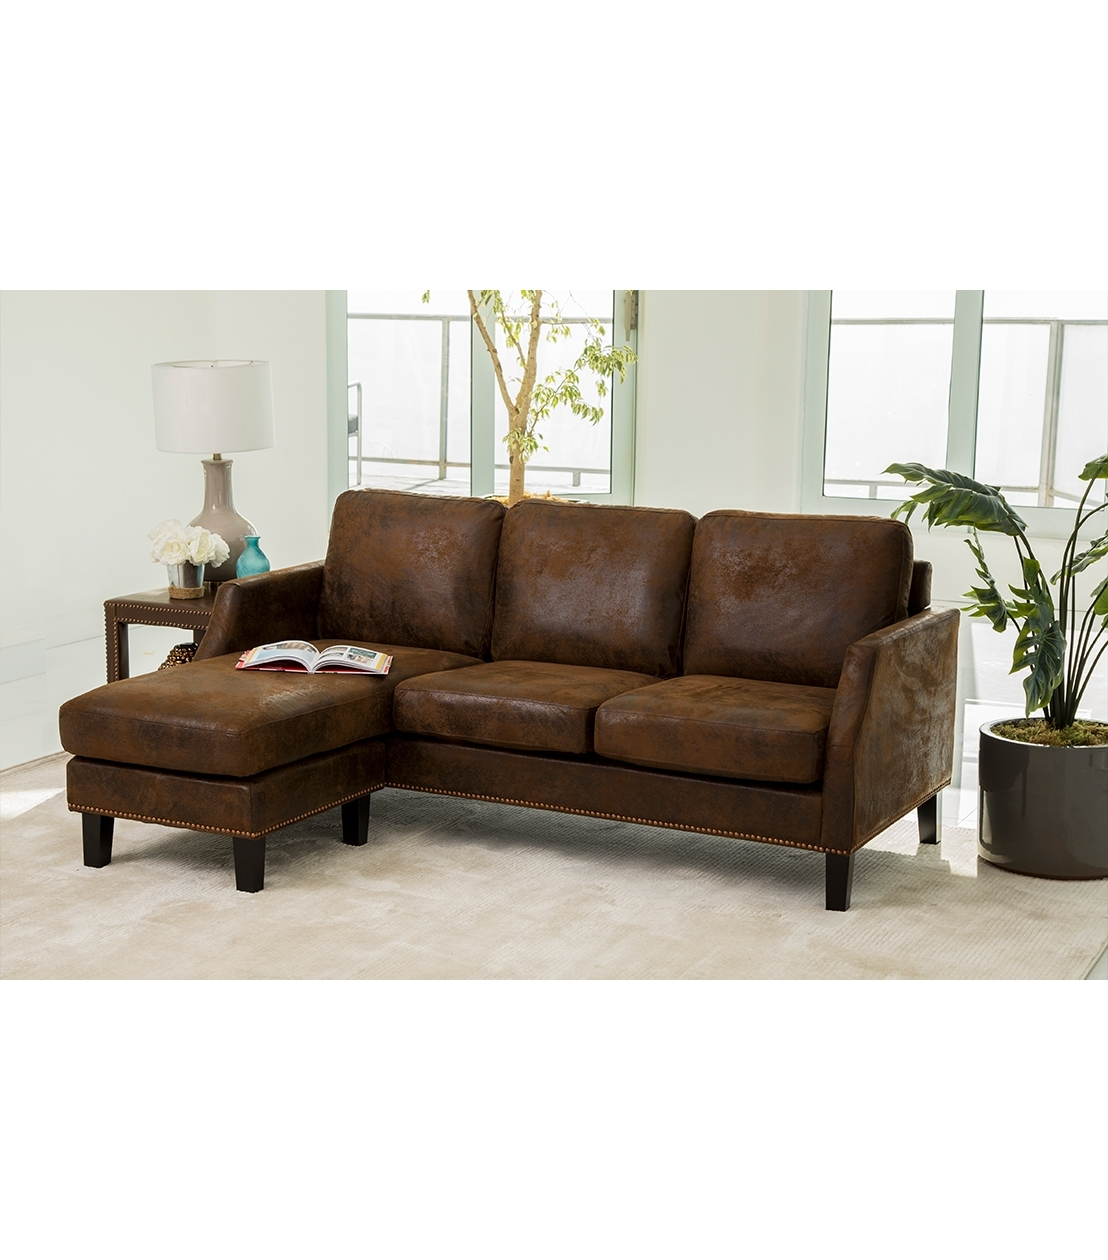 Sectionals Pertaining To Delano 2 Piece Sectionals With Laf Oversized Chaise (Image 24 of 25)